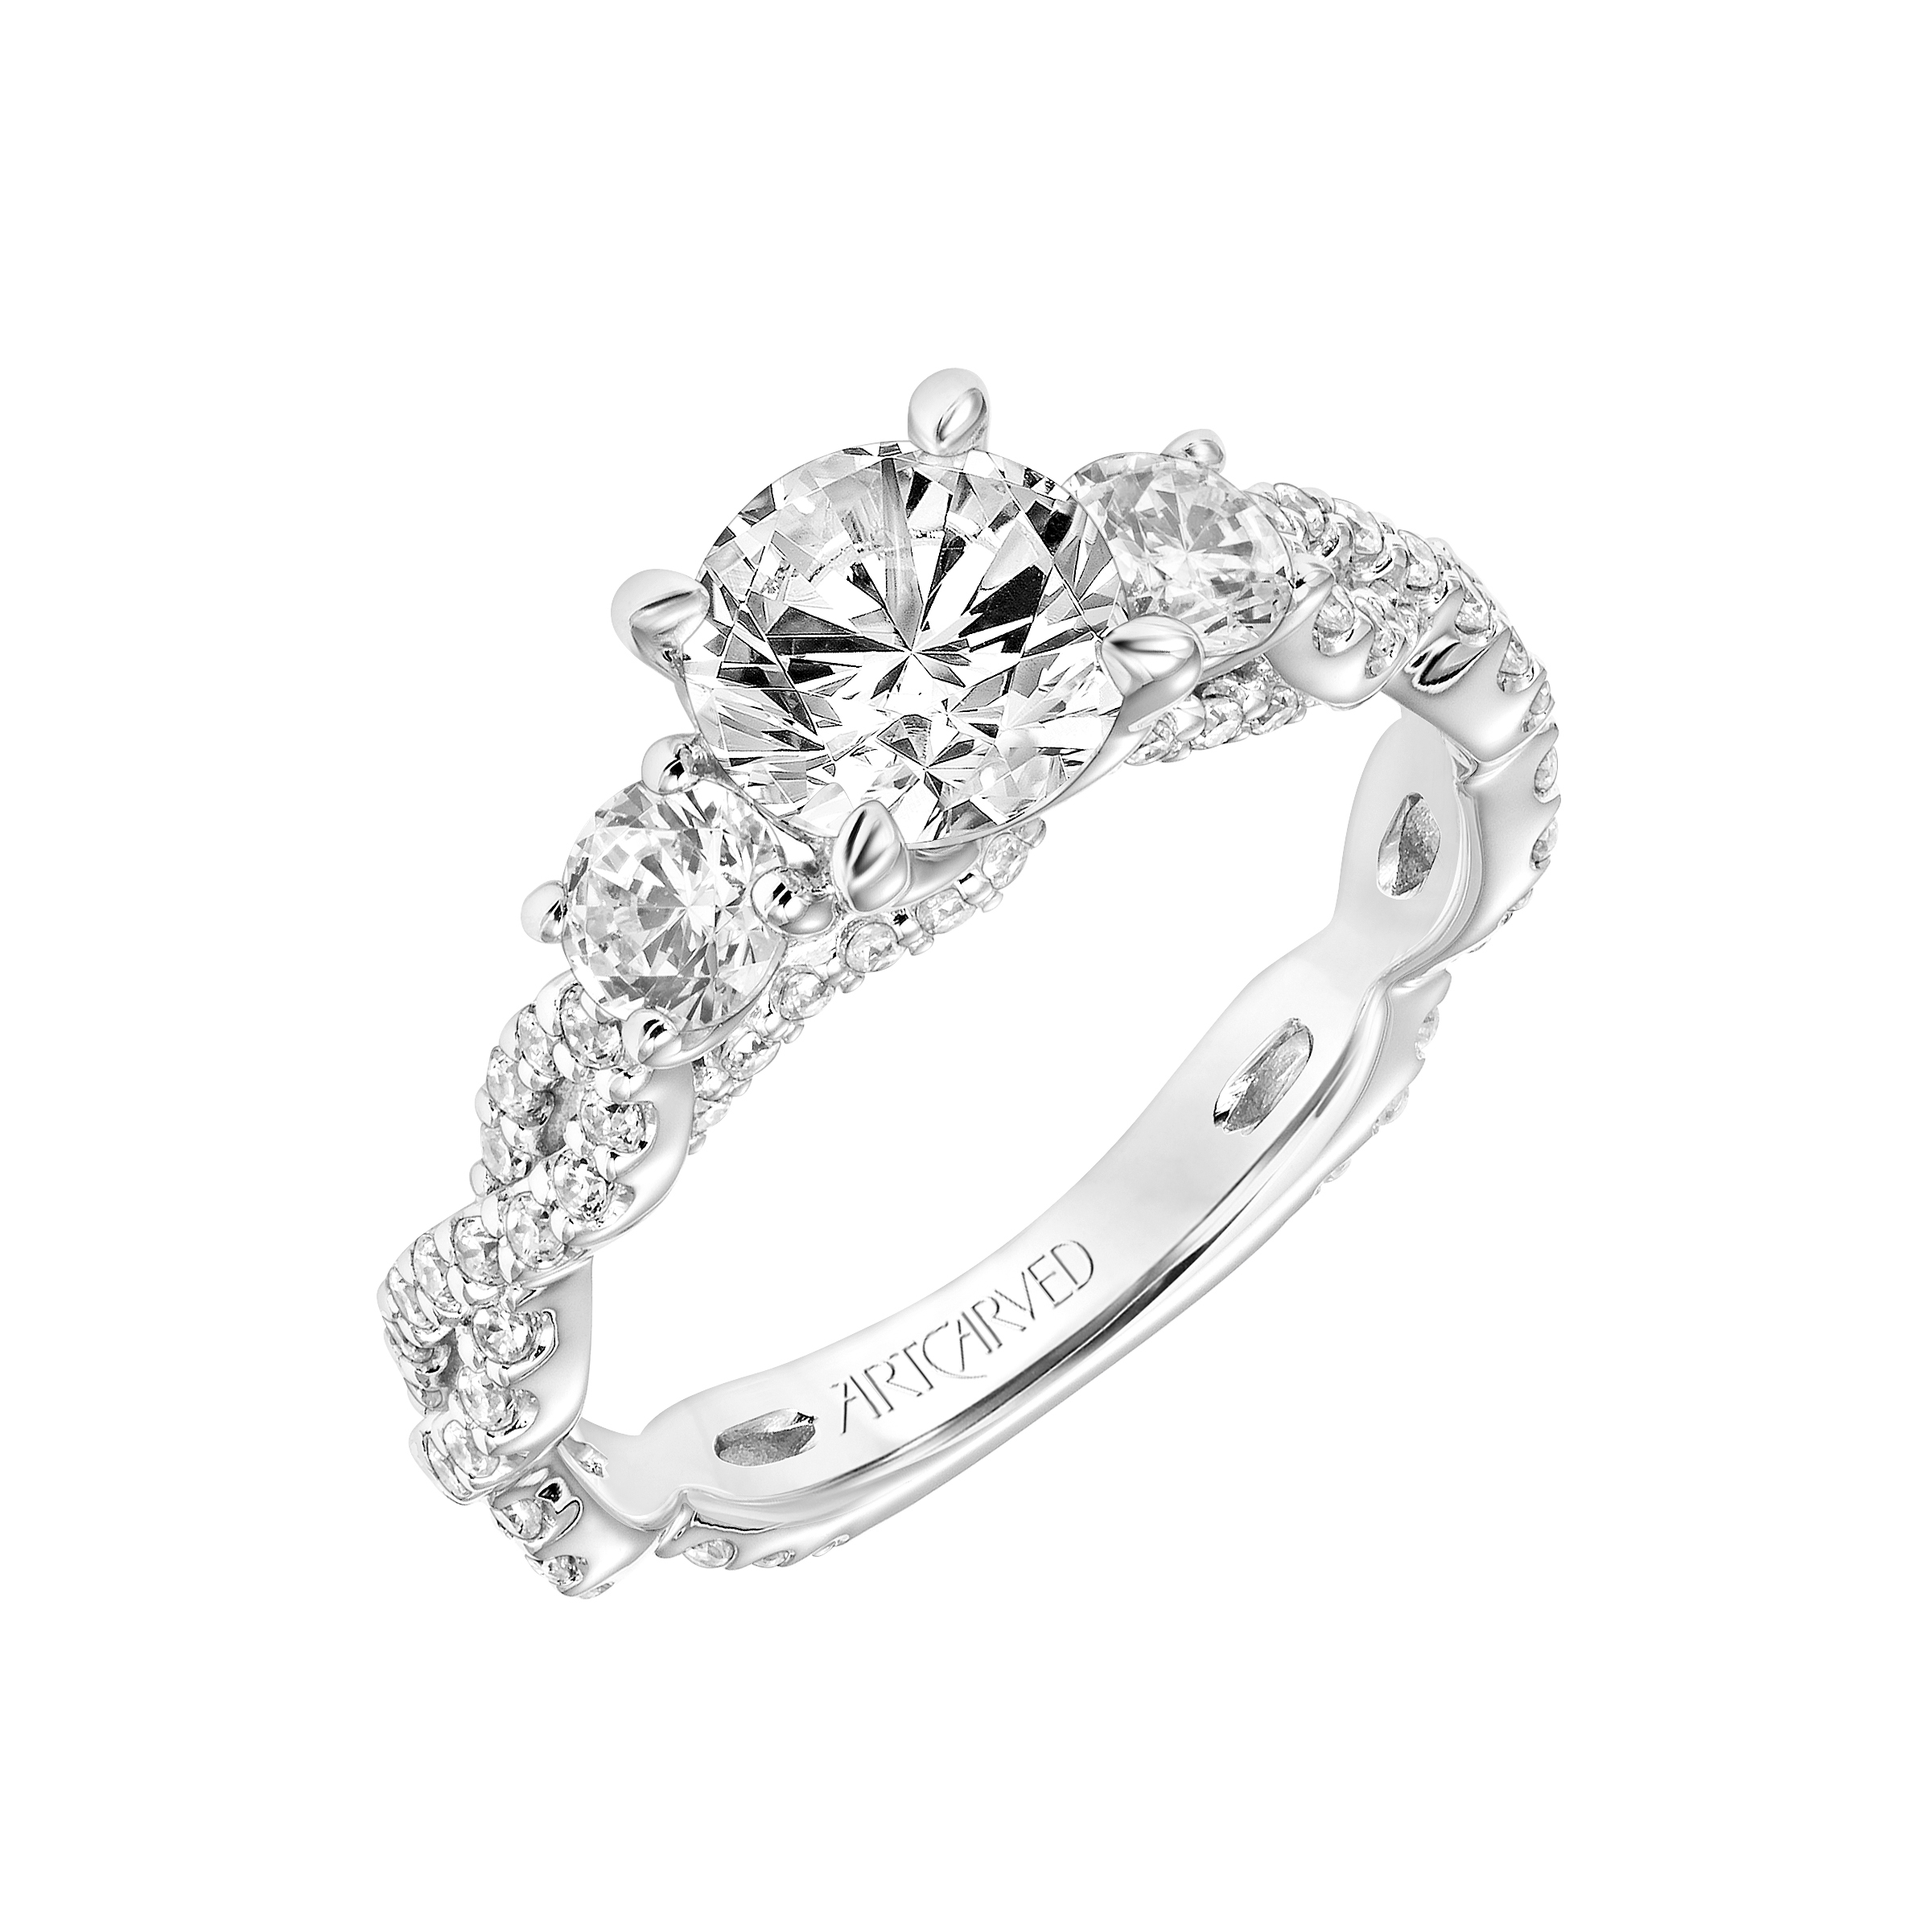 ring sets forever wedding one pin diamond band wrap rings moissanite cushion halo carat cathedral engagement and